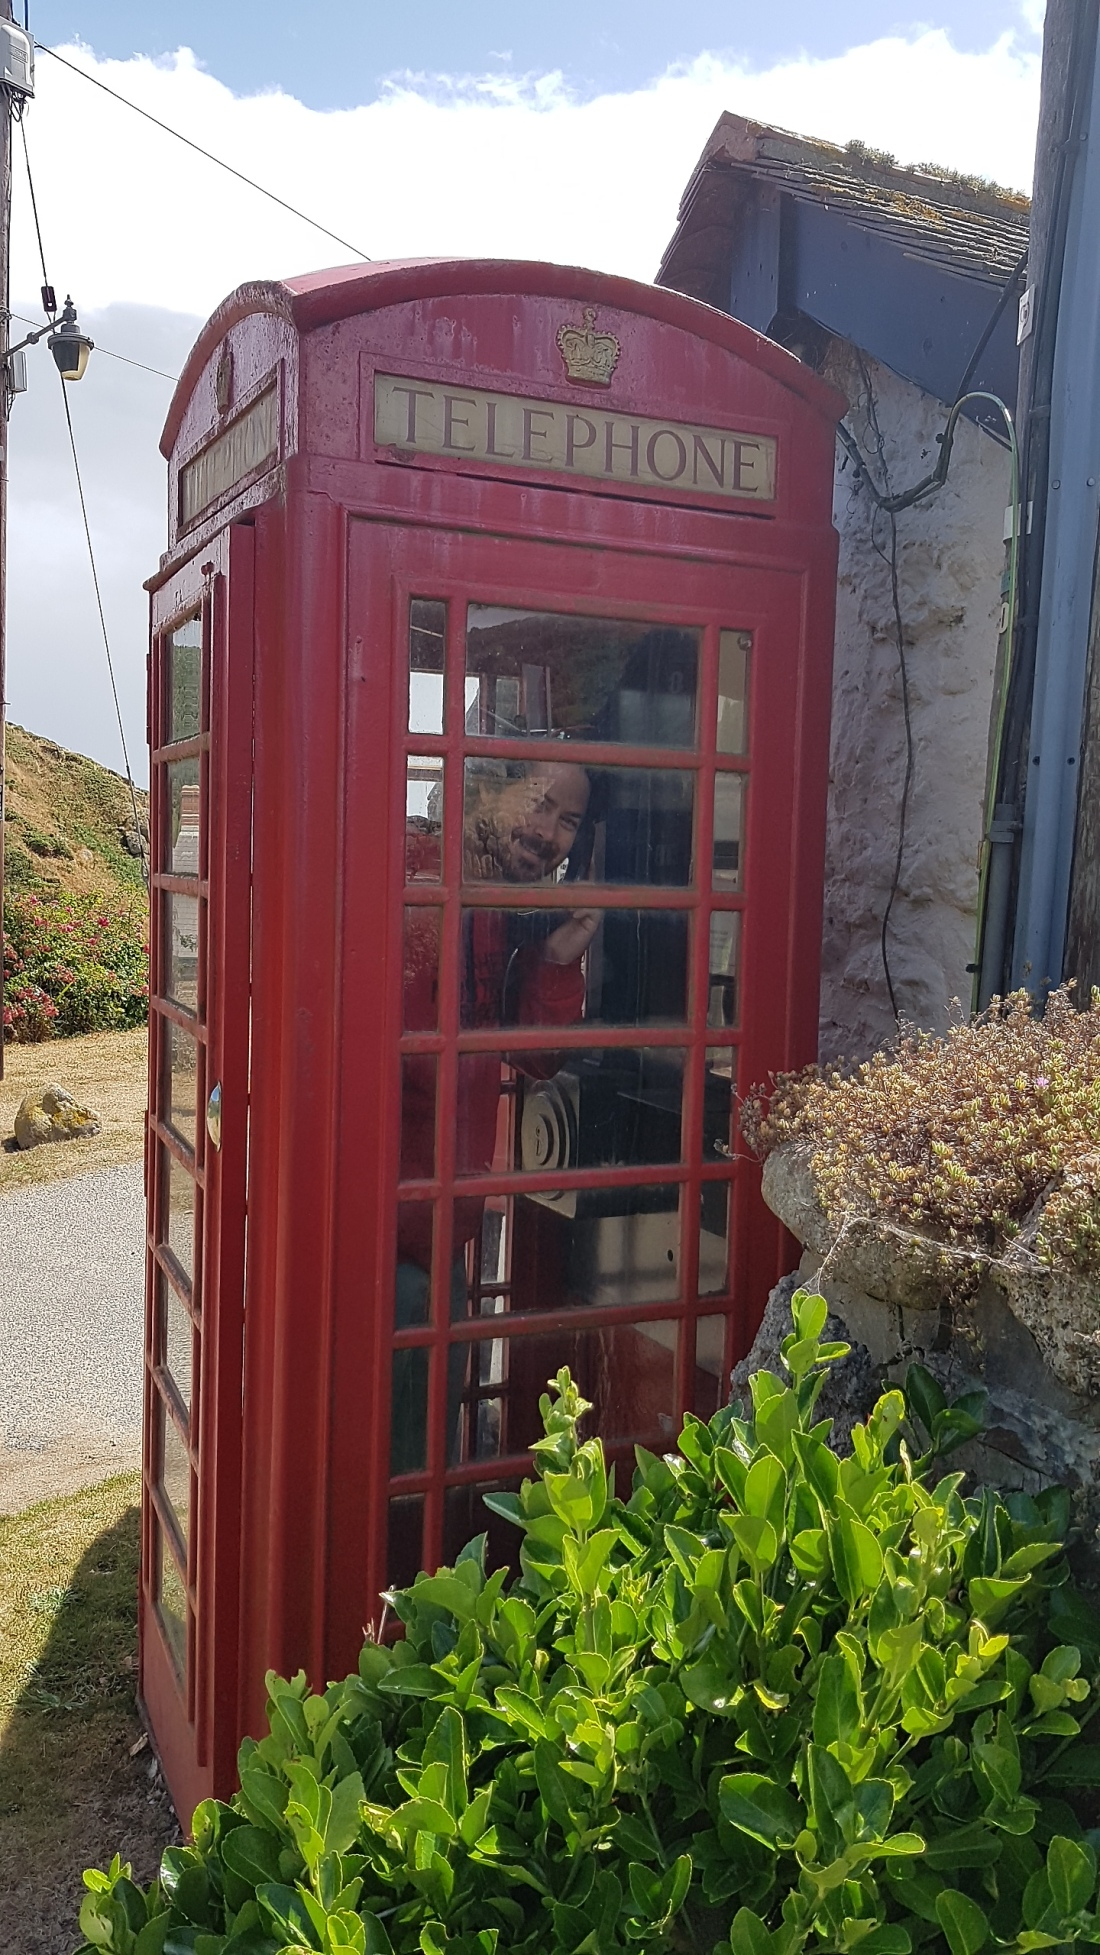 Porthgwarra Phone Booth